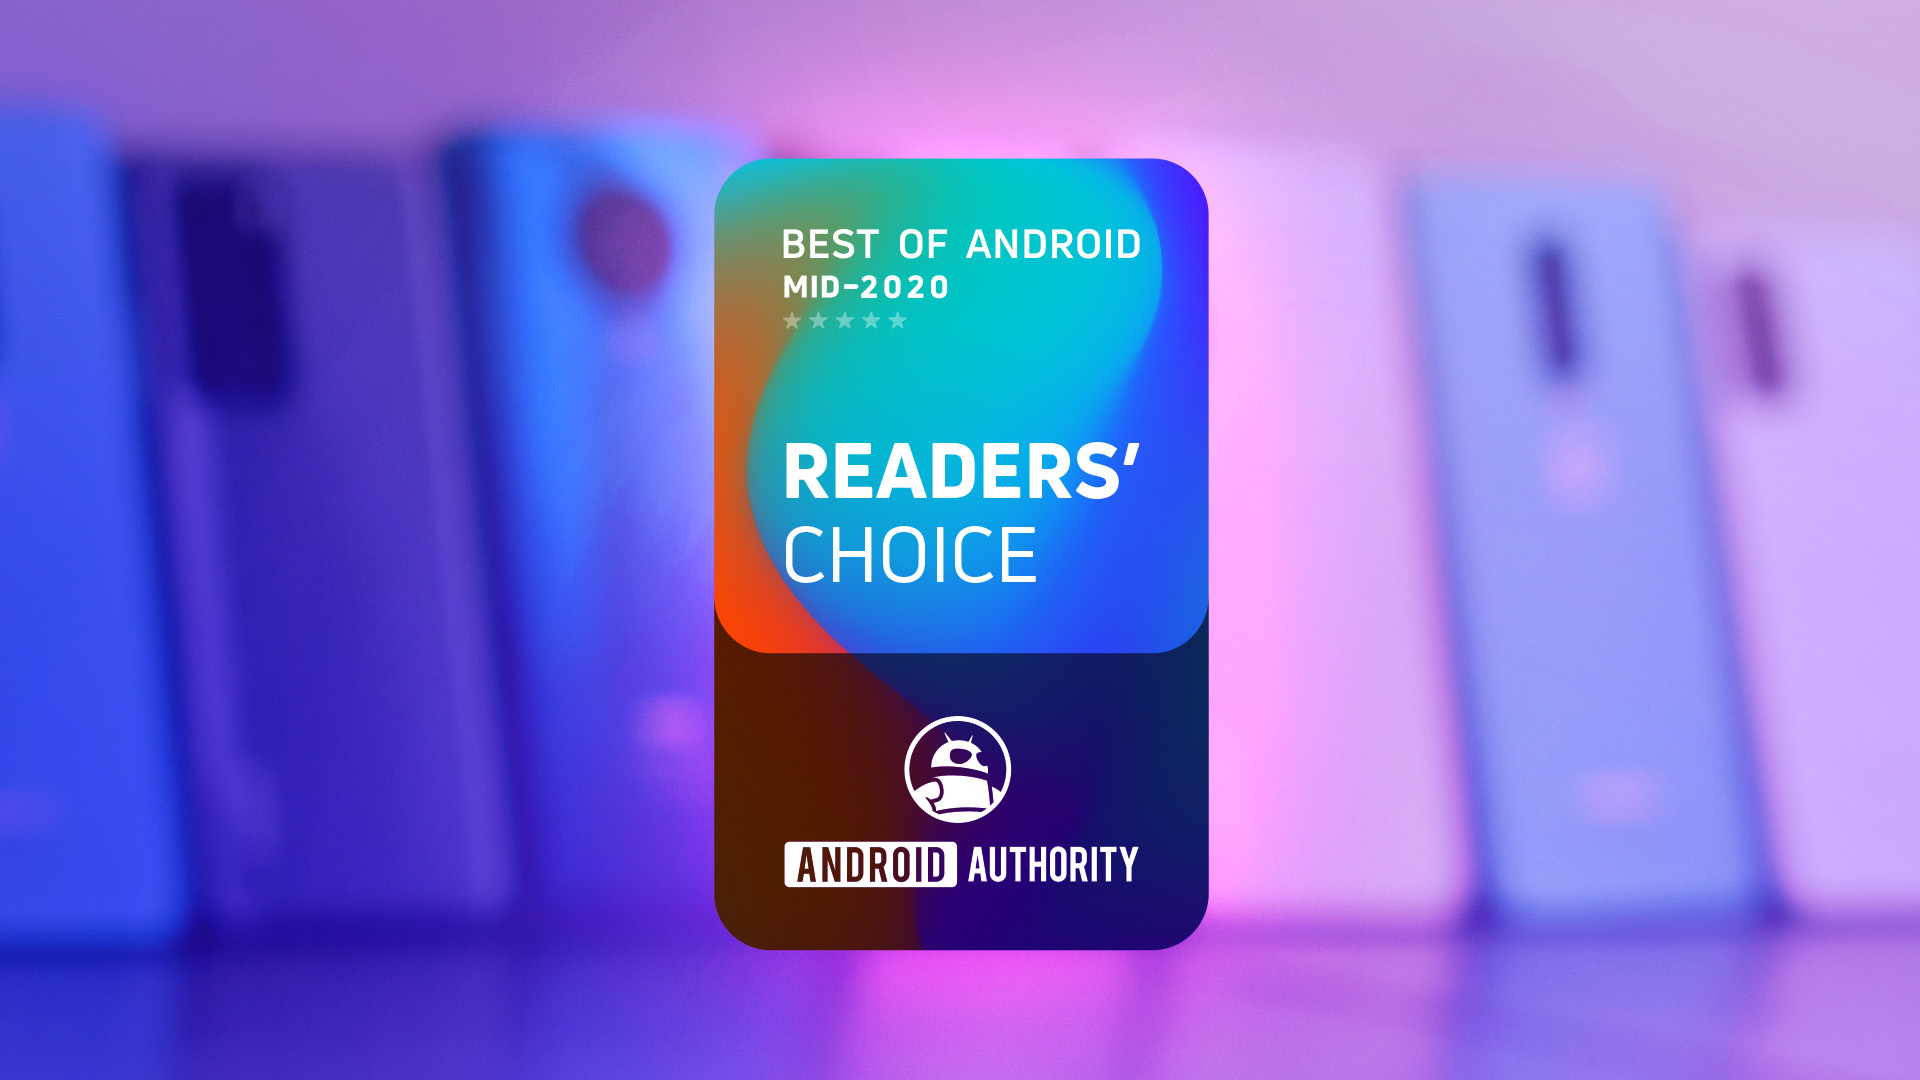 Best of Android Mid 2020 Readers Choice